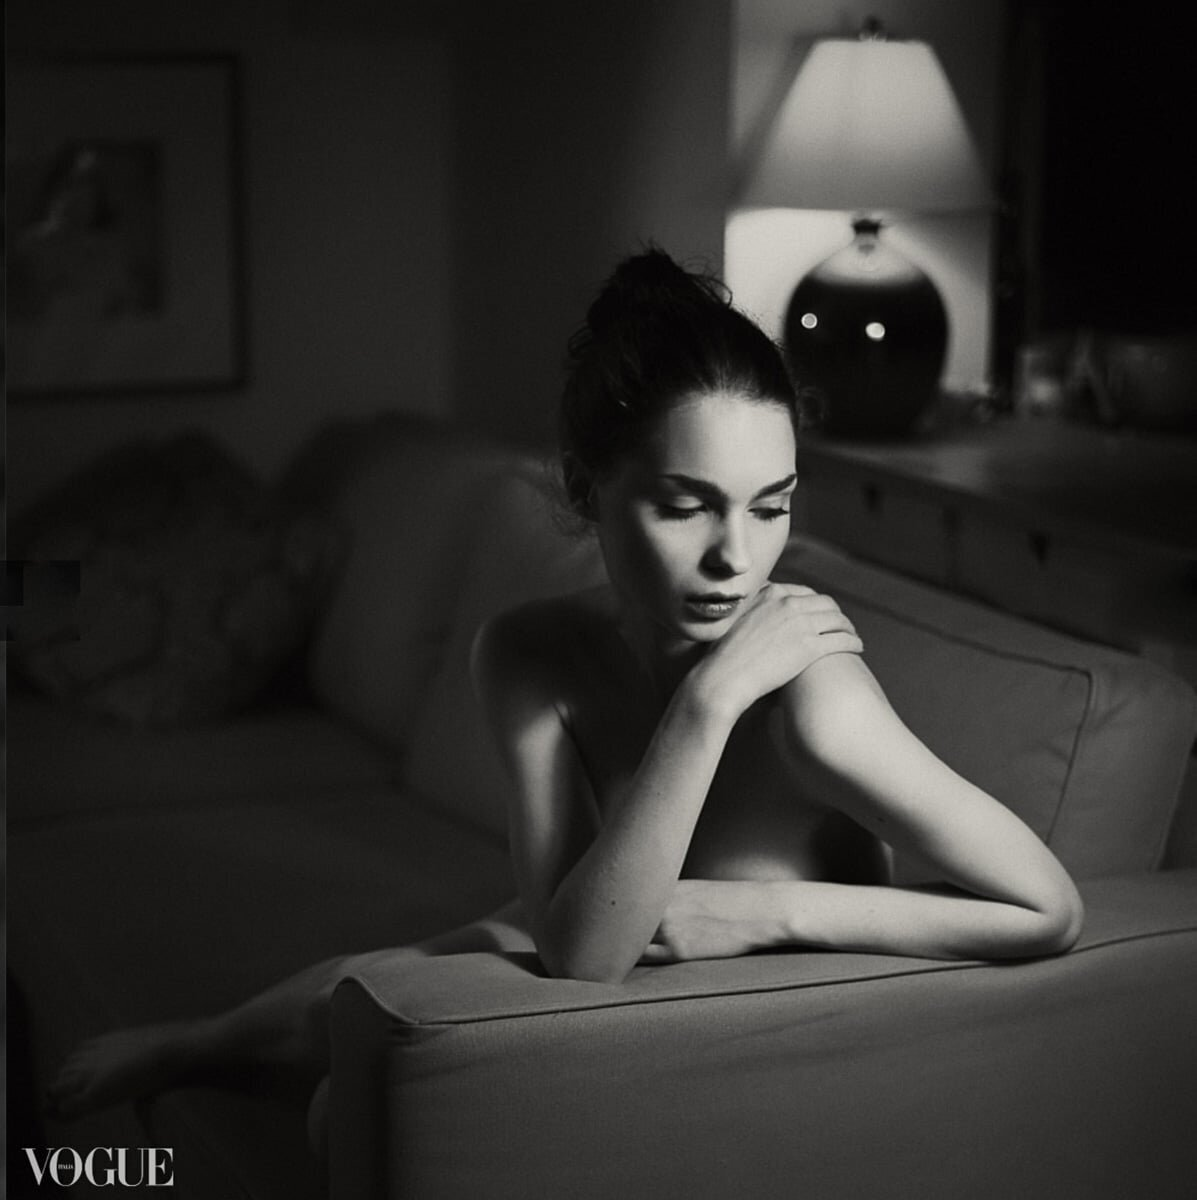 vogue-portrait-photographer-boston-photo-26